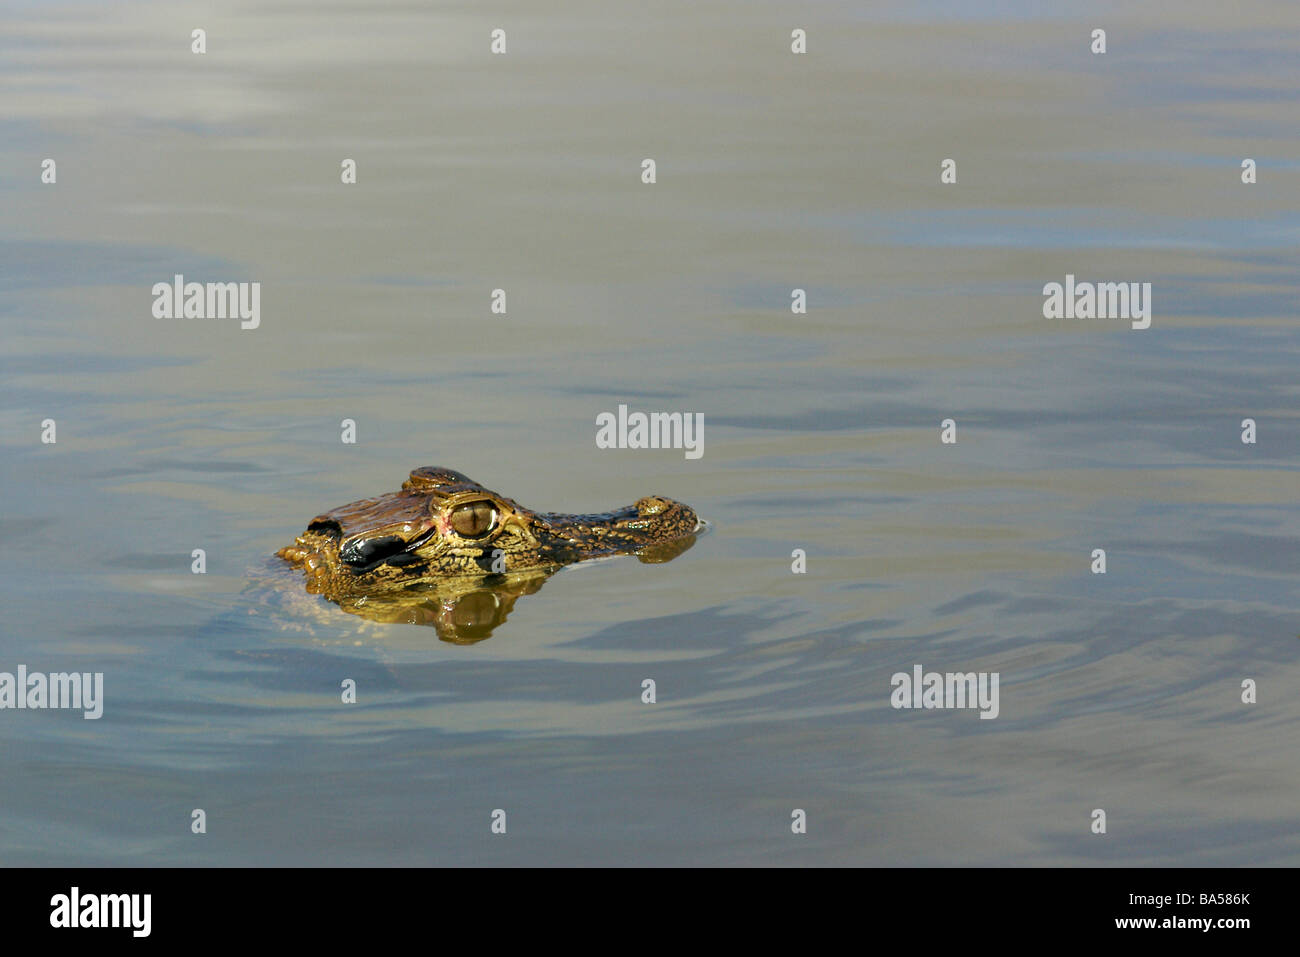 A young Black Caiman (Melanosuchus niger) floating in the Amazon flooded forest waters in the Mamirauá Reserve, - Stock Image